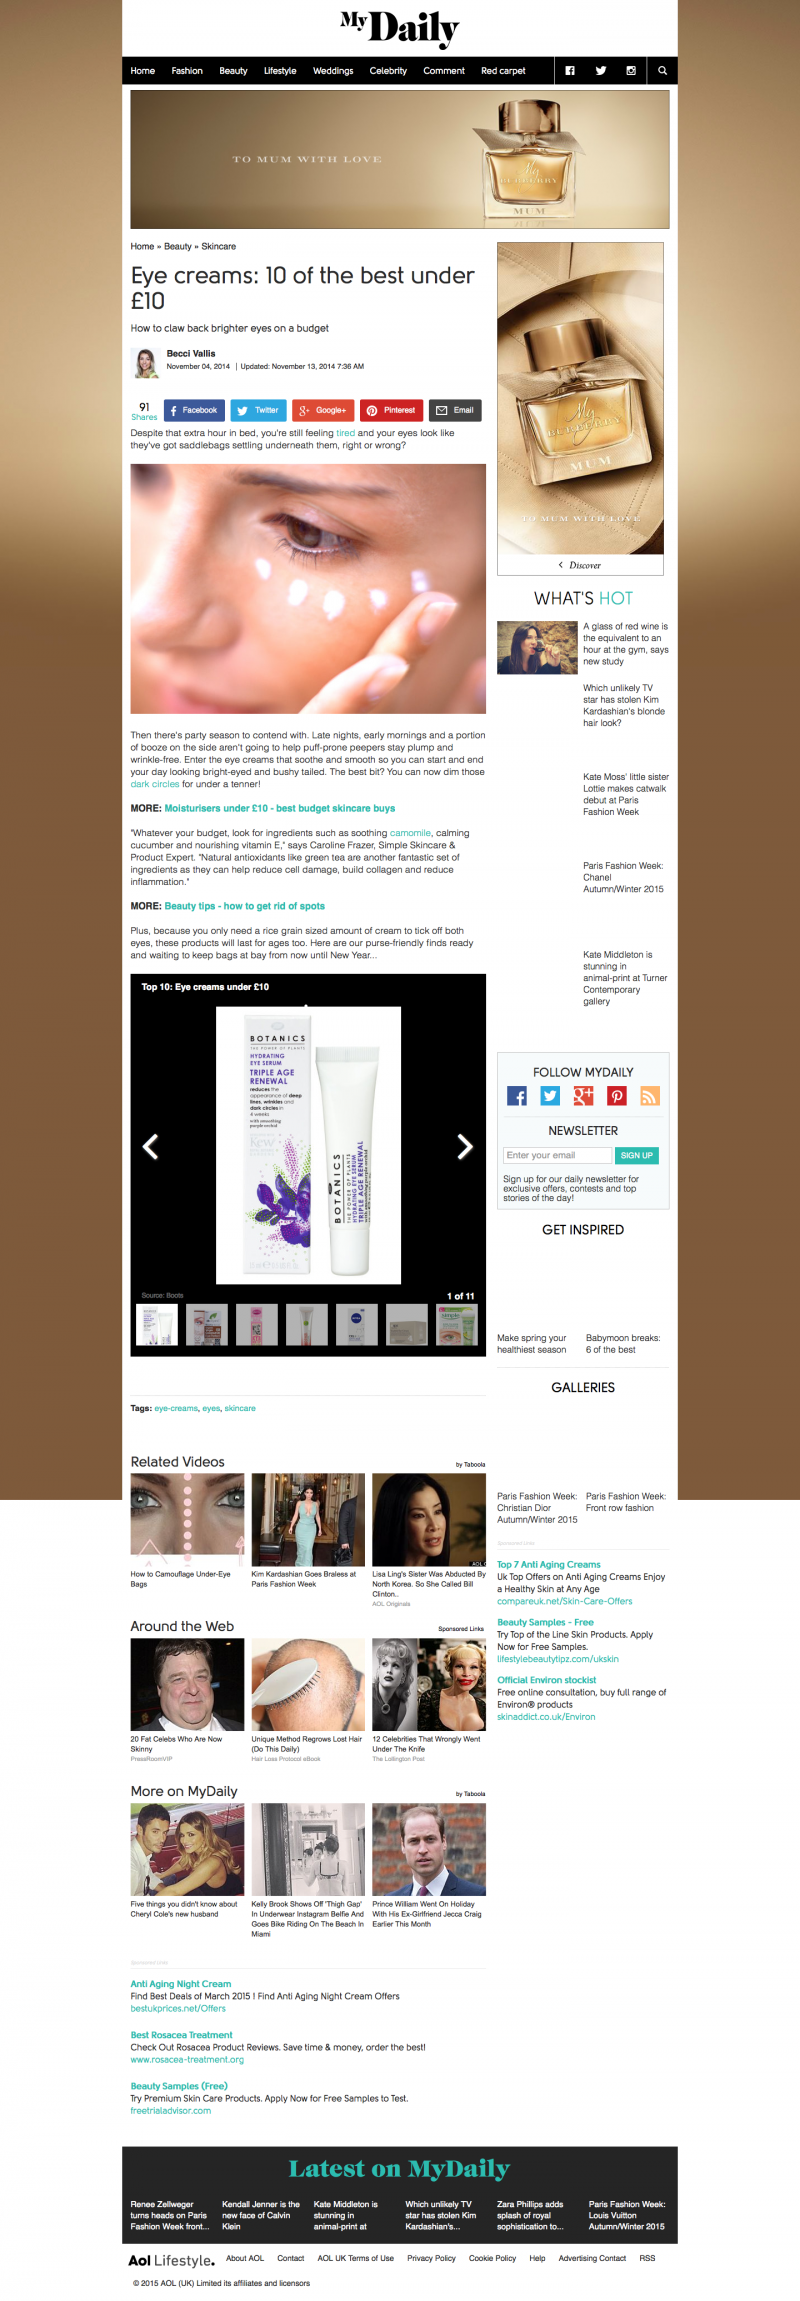 Eye_creams_10_of_the_best_under_£10_-_MyDaily_UK_-_2015-03-11_21.16.43